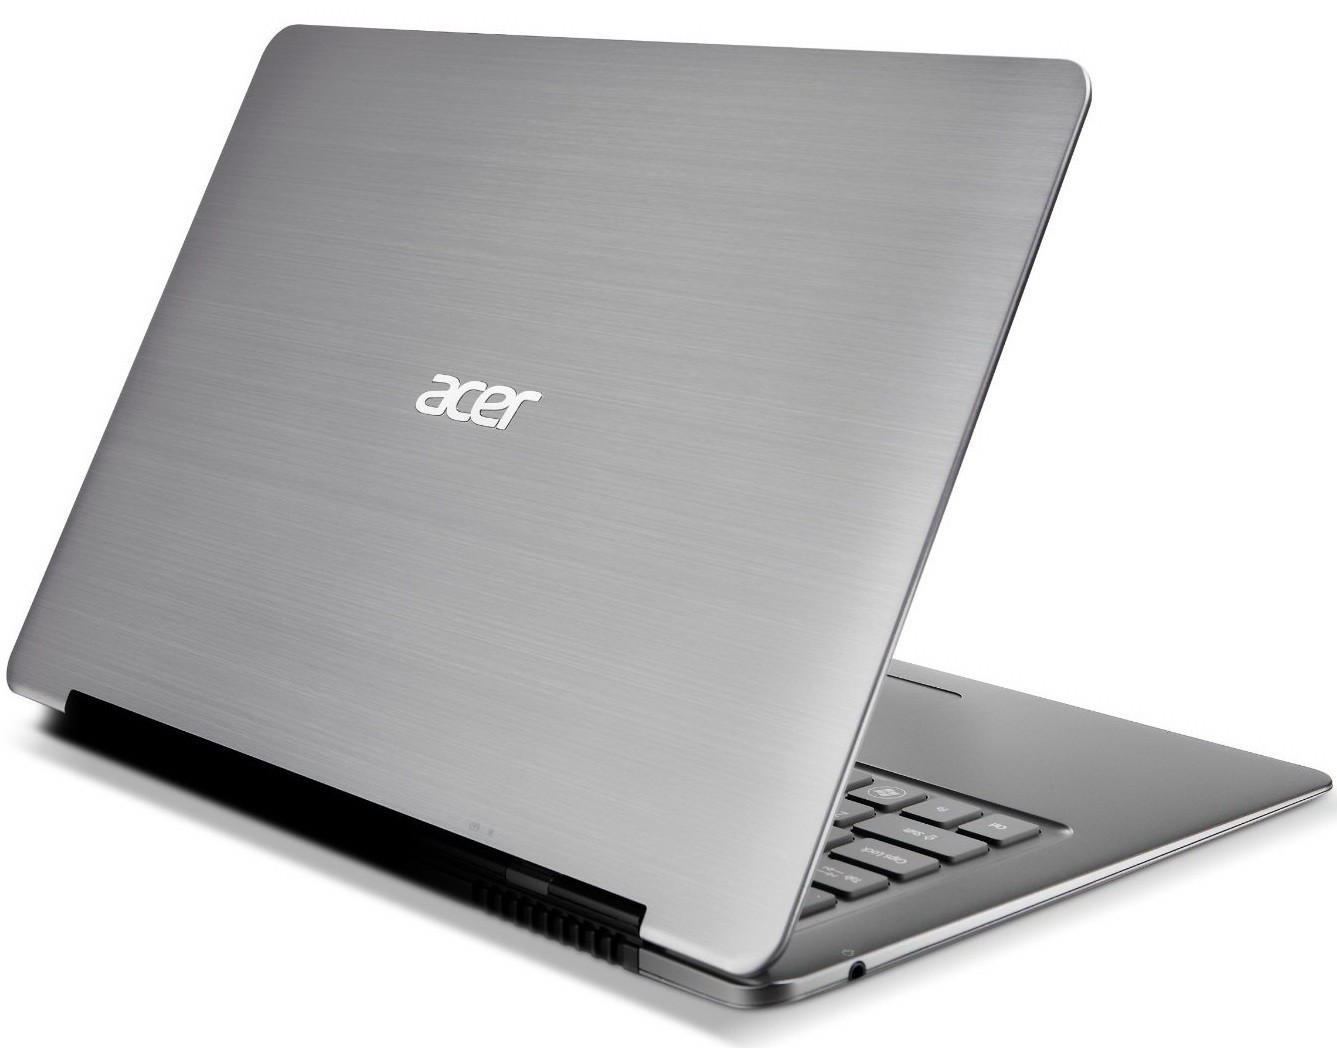 "Acer Aspire S3-951-6646 Ultrabook with 13.3"" HD Display ..."